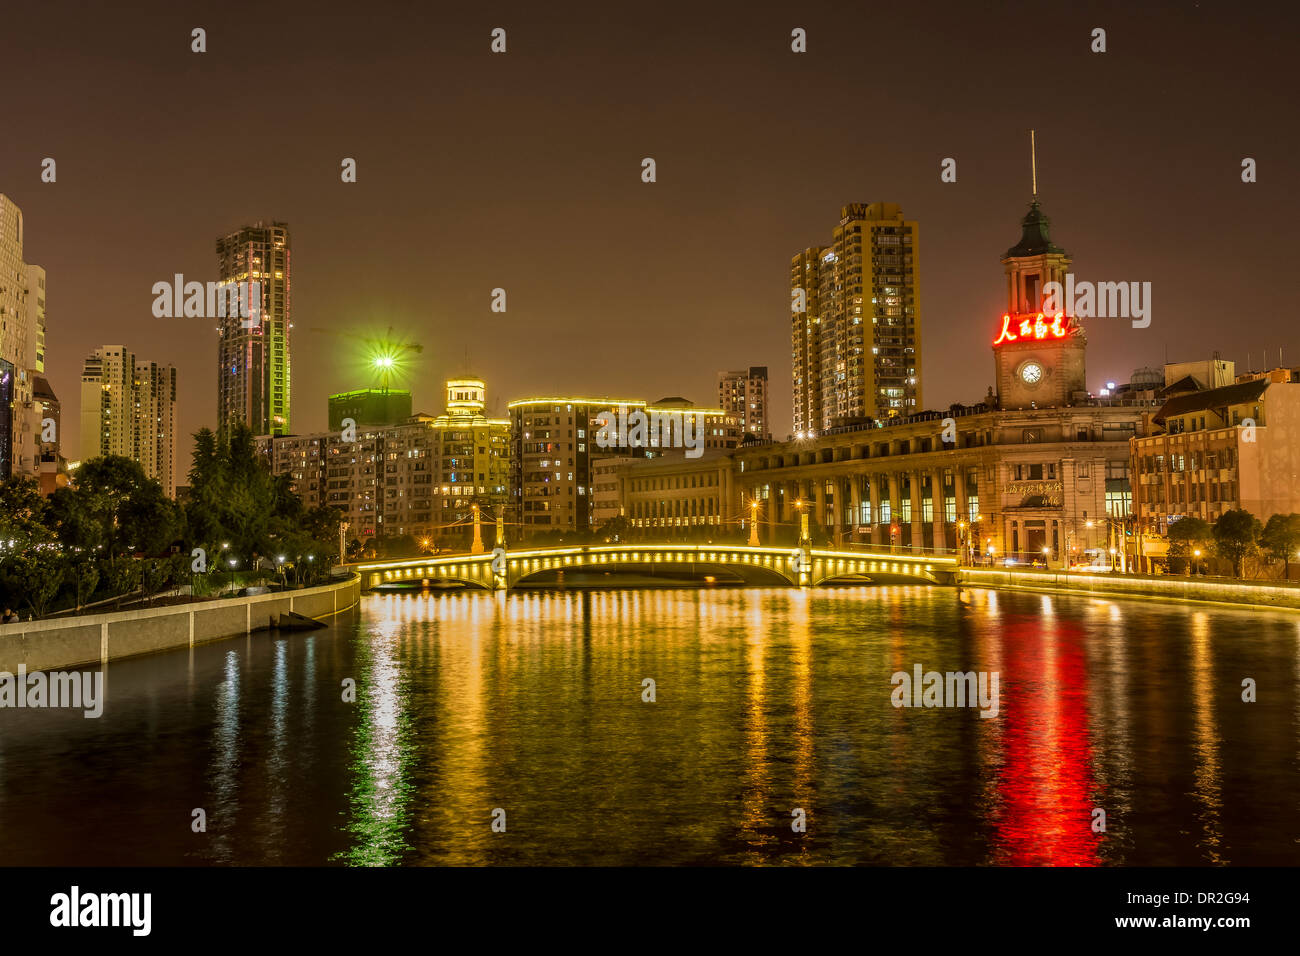 Night View of Shanghai Postal Museum, Shanghai, China - Stock Image